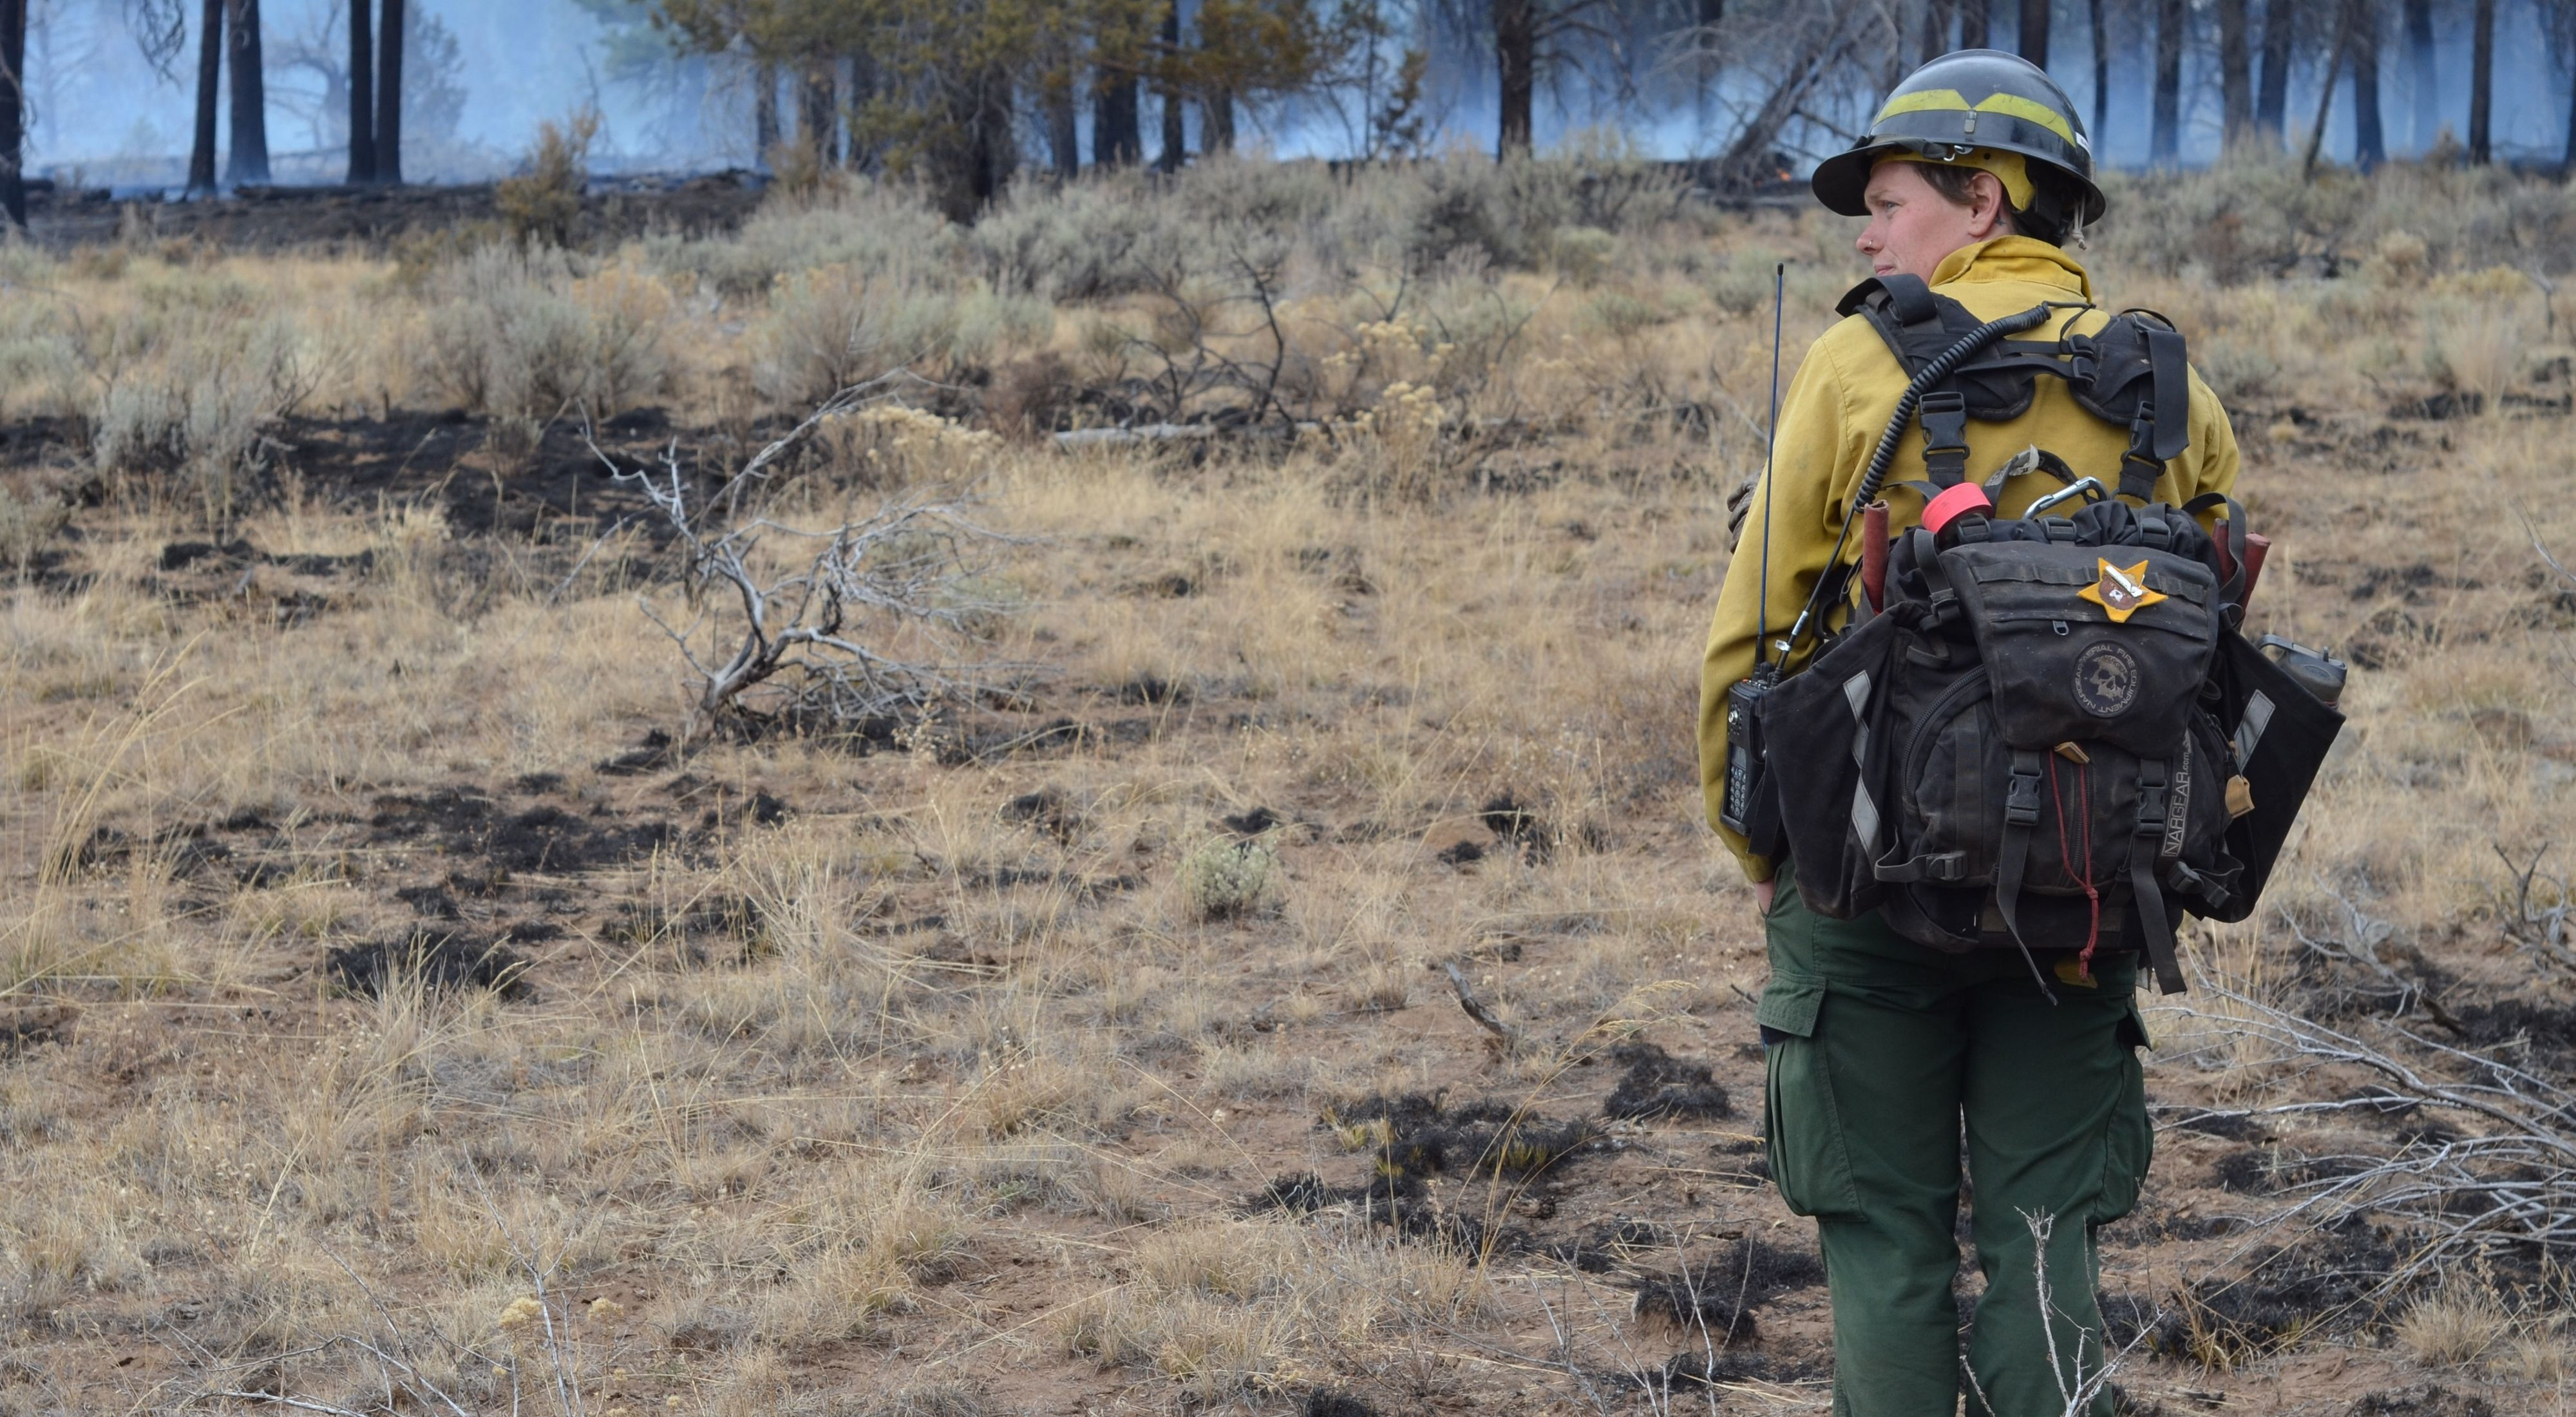 TNC Oregon Burn Boss Katie Sauerbrey stands in fire practitioner gear with her back turned and a forest in front of her.